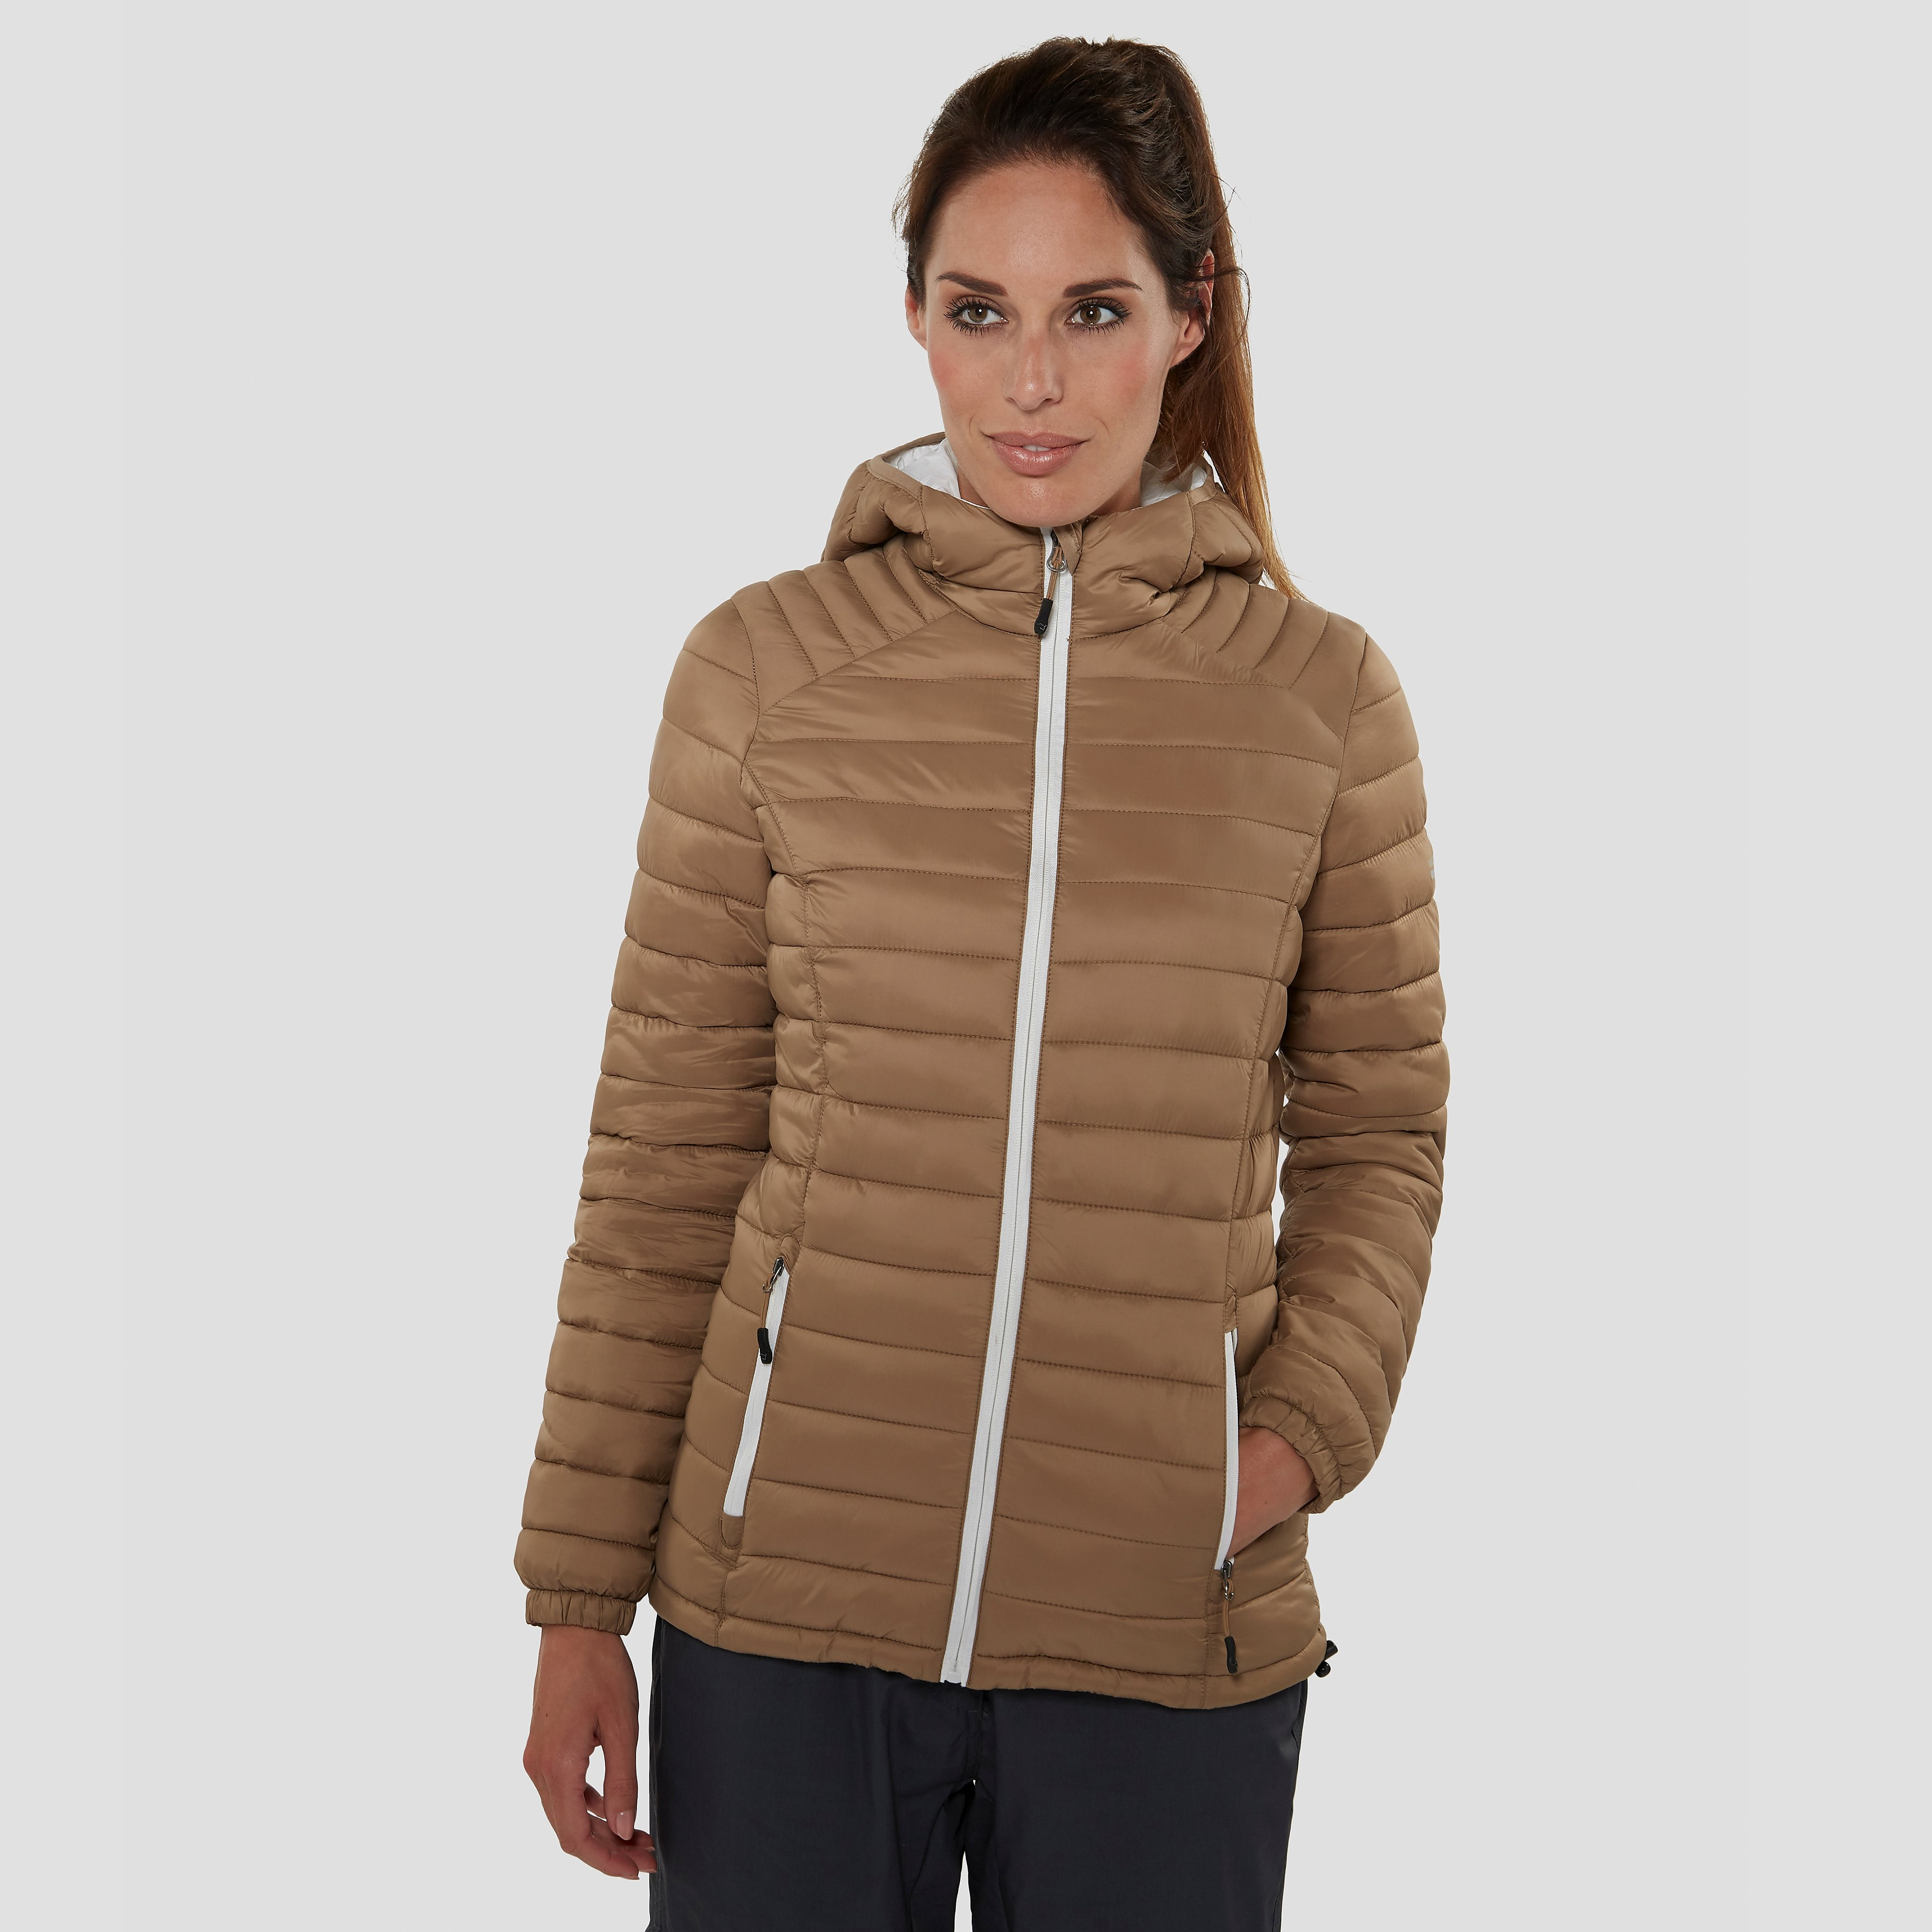 WILDEBEAST AMPLIFY FLEECE OUTDOOR JAS BRUIN DAMES